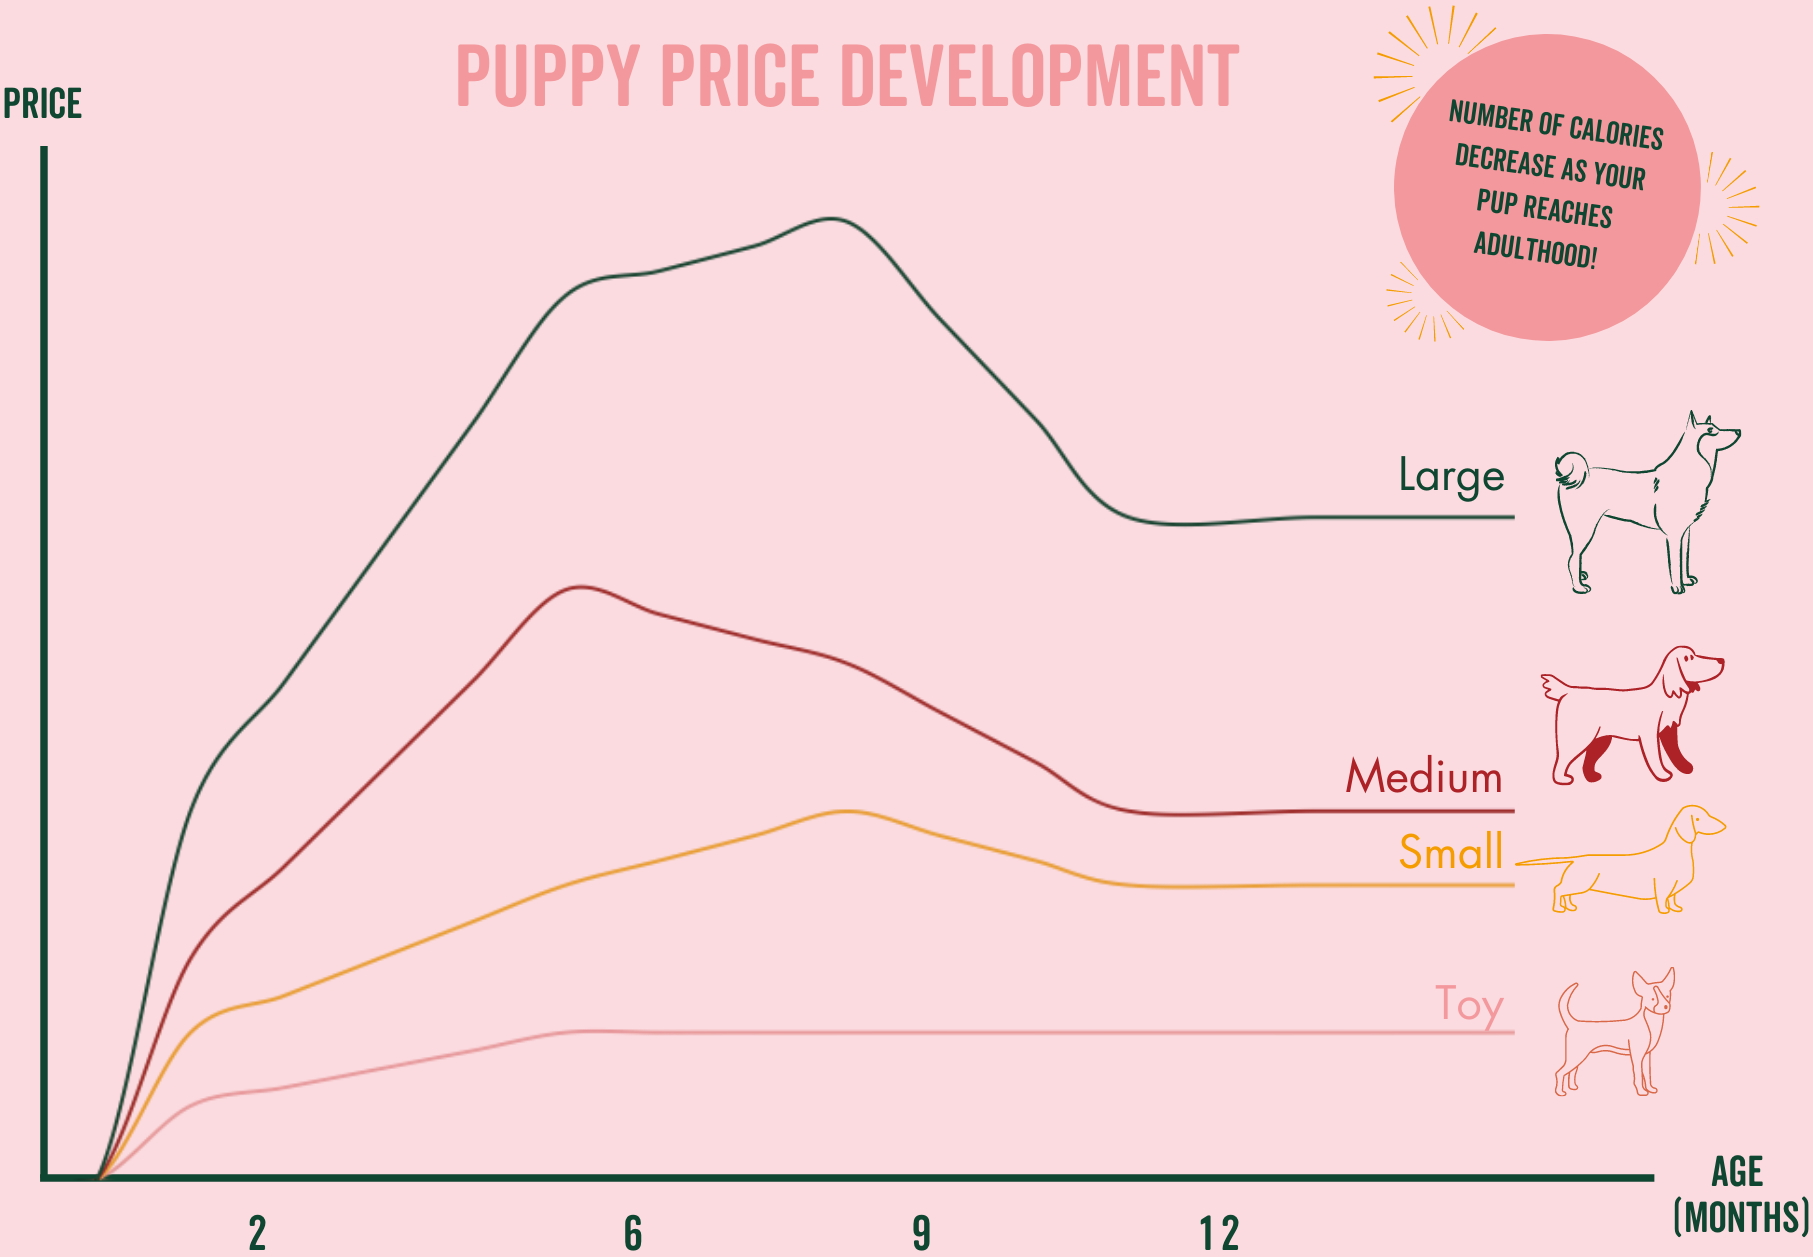 Puppy Price Development